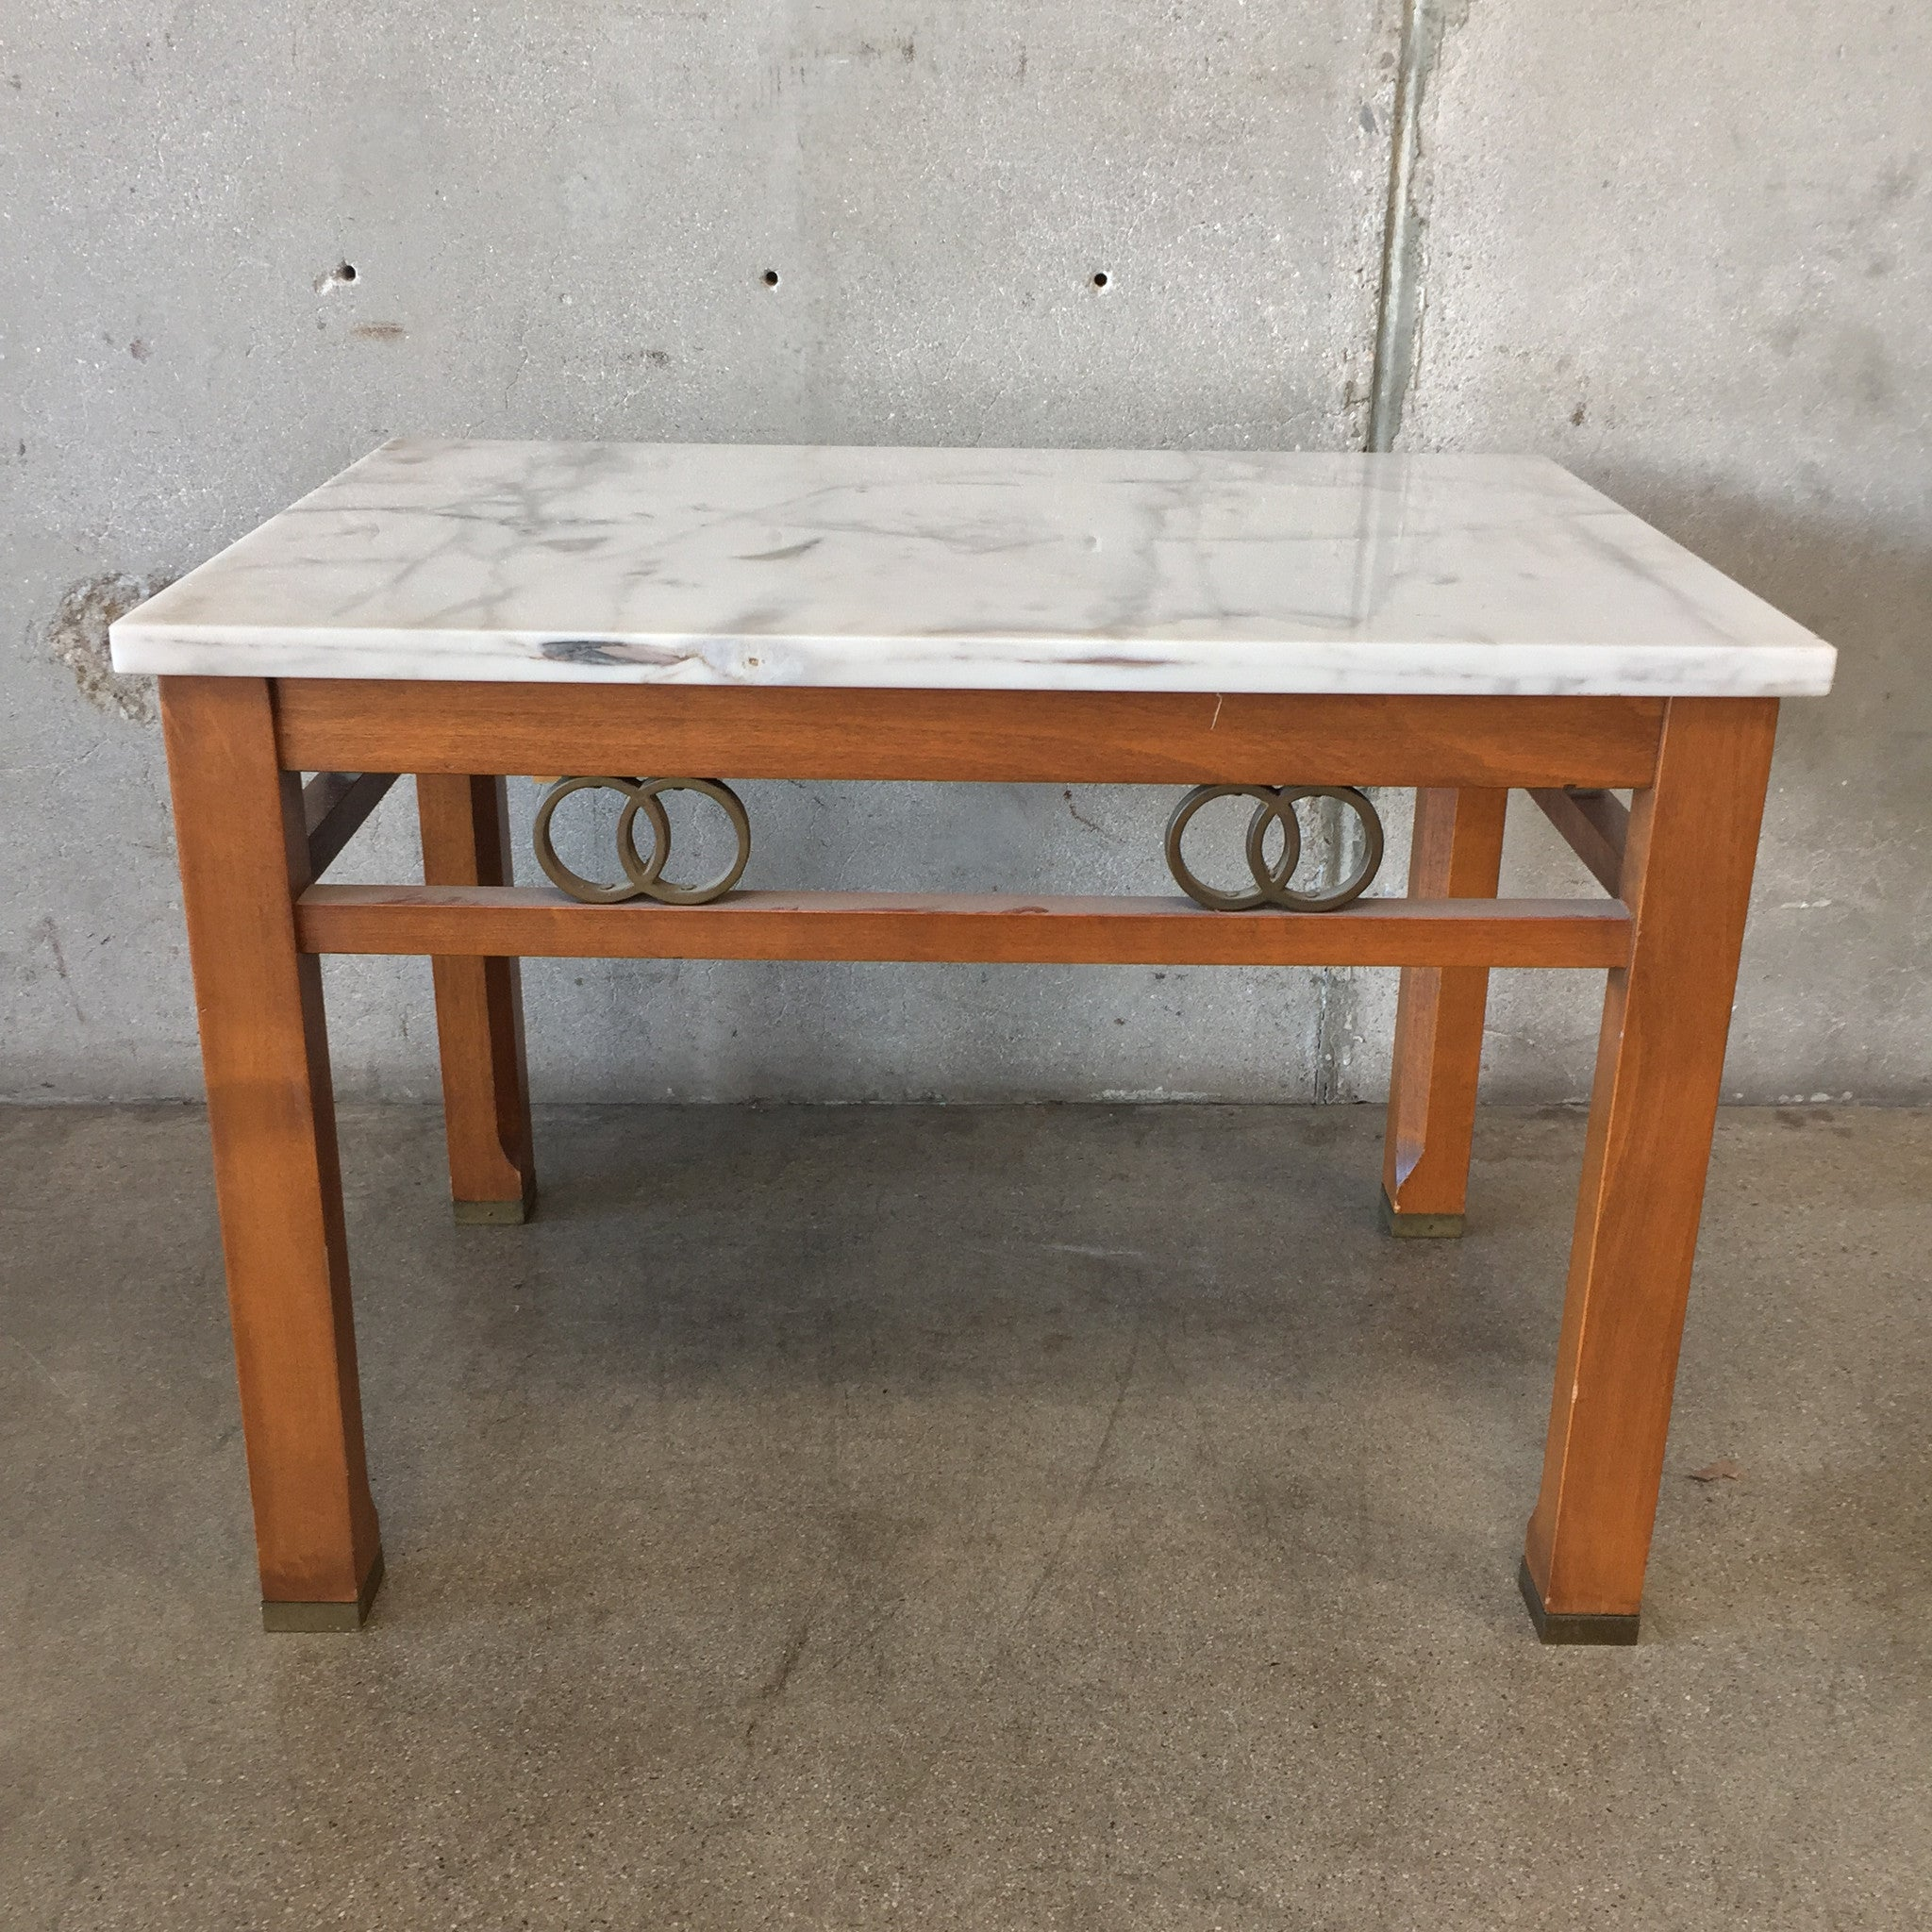 Italian Marble Table By Cal Marble Furniture Co.